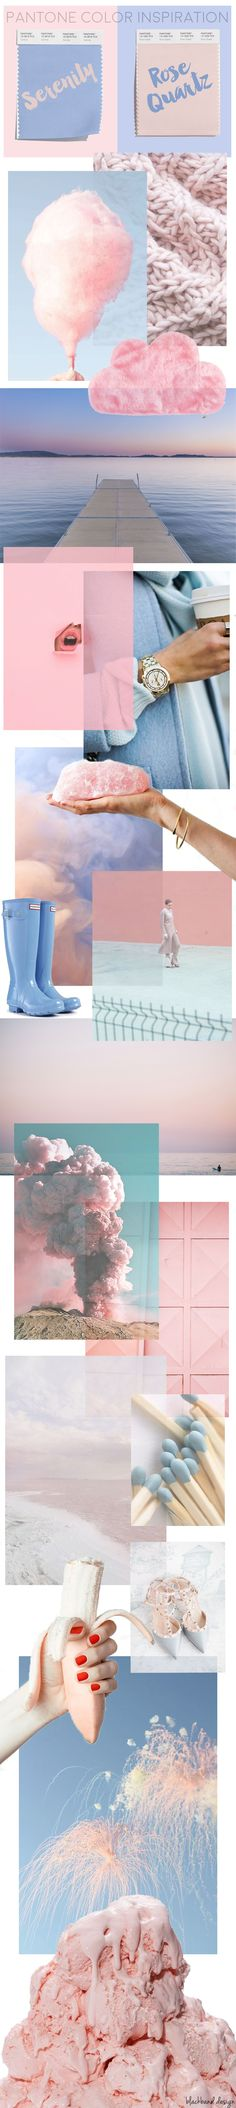 ROSE QUARTZ AND SERENITY INSPIRATION by blackband design.  www.blackbanddesign.com/blog